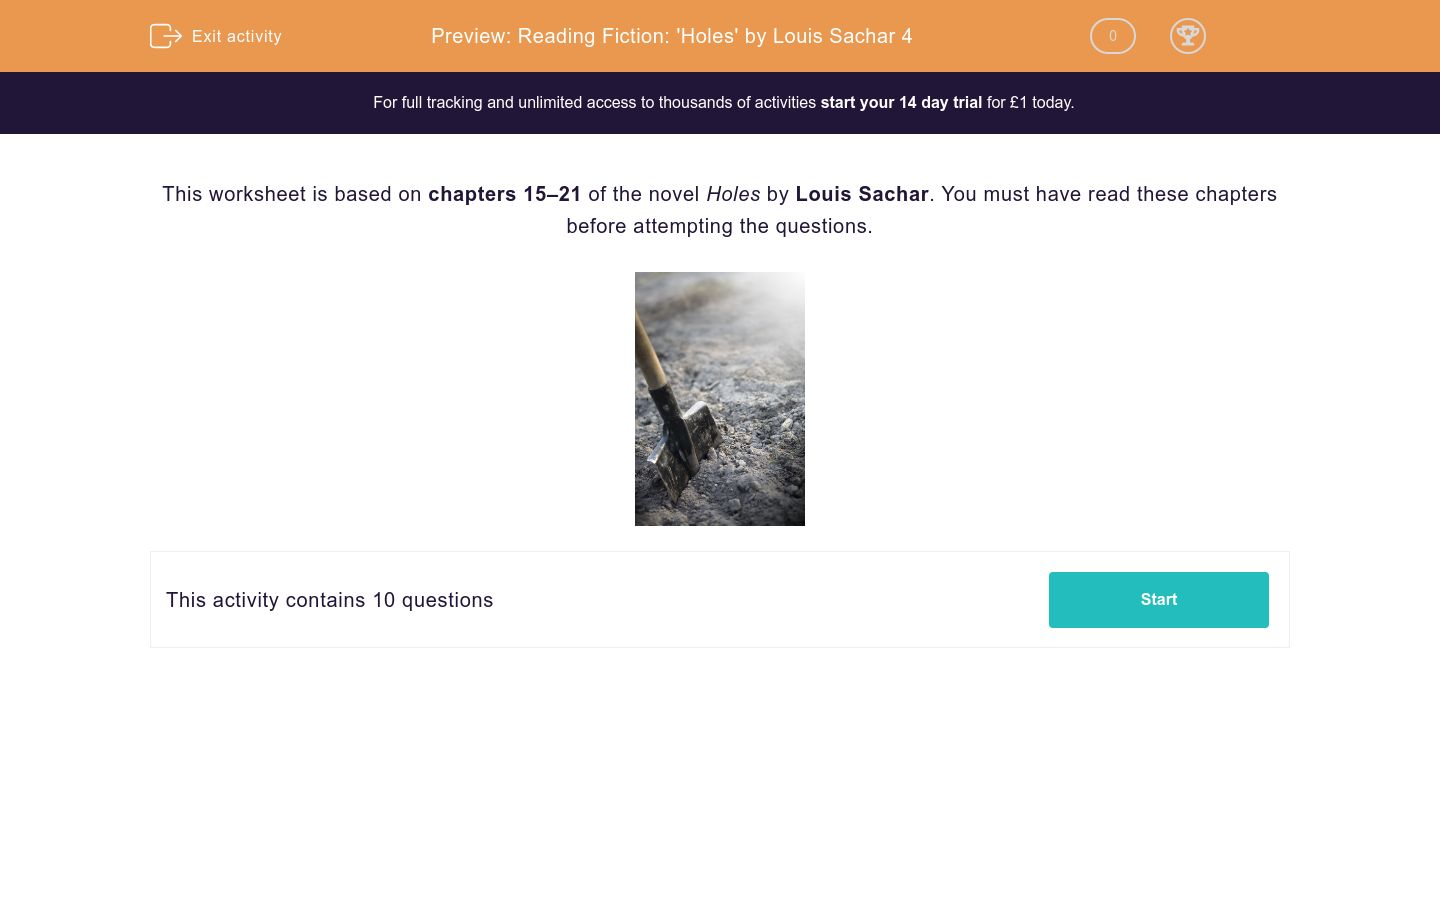 'Reading Fiction: 'Holes' by Louis Sachar 4' worksheet